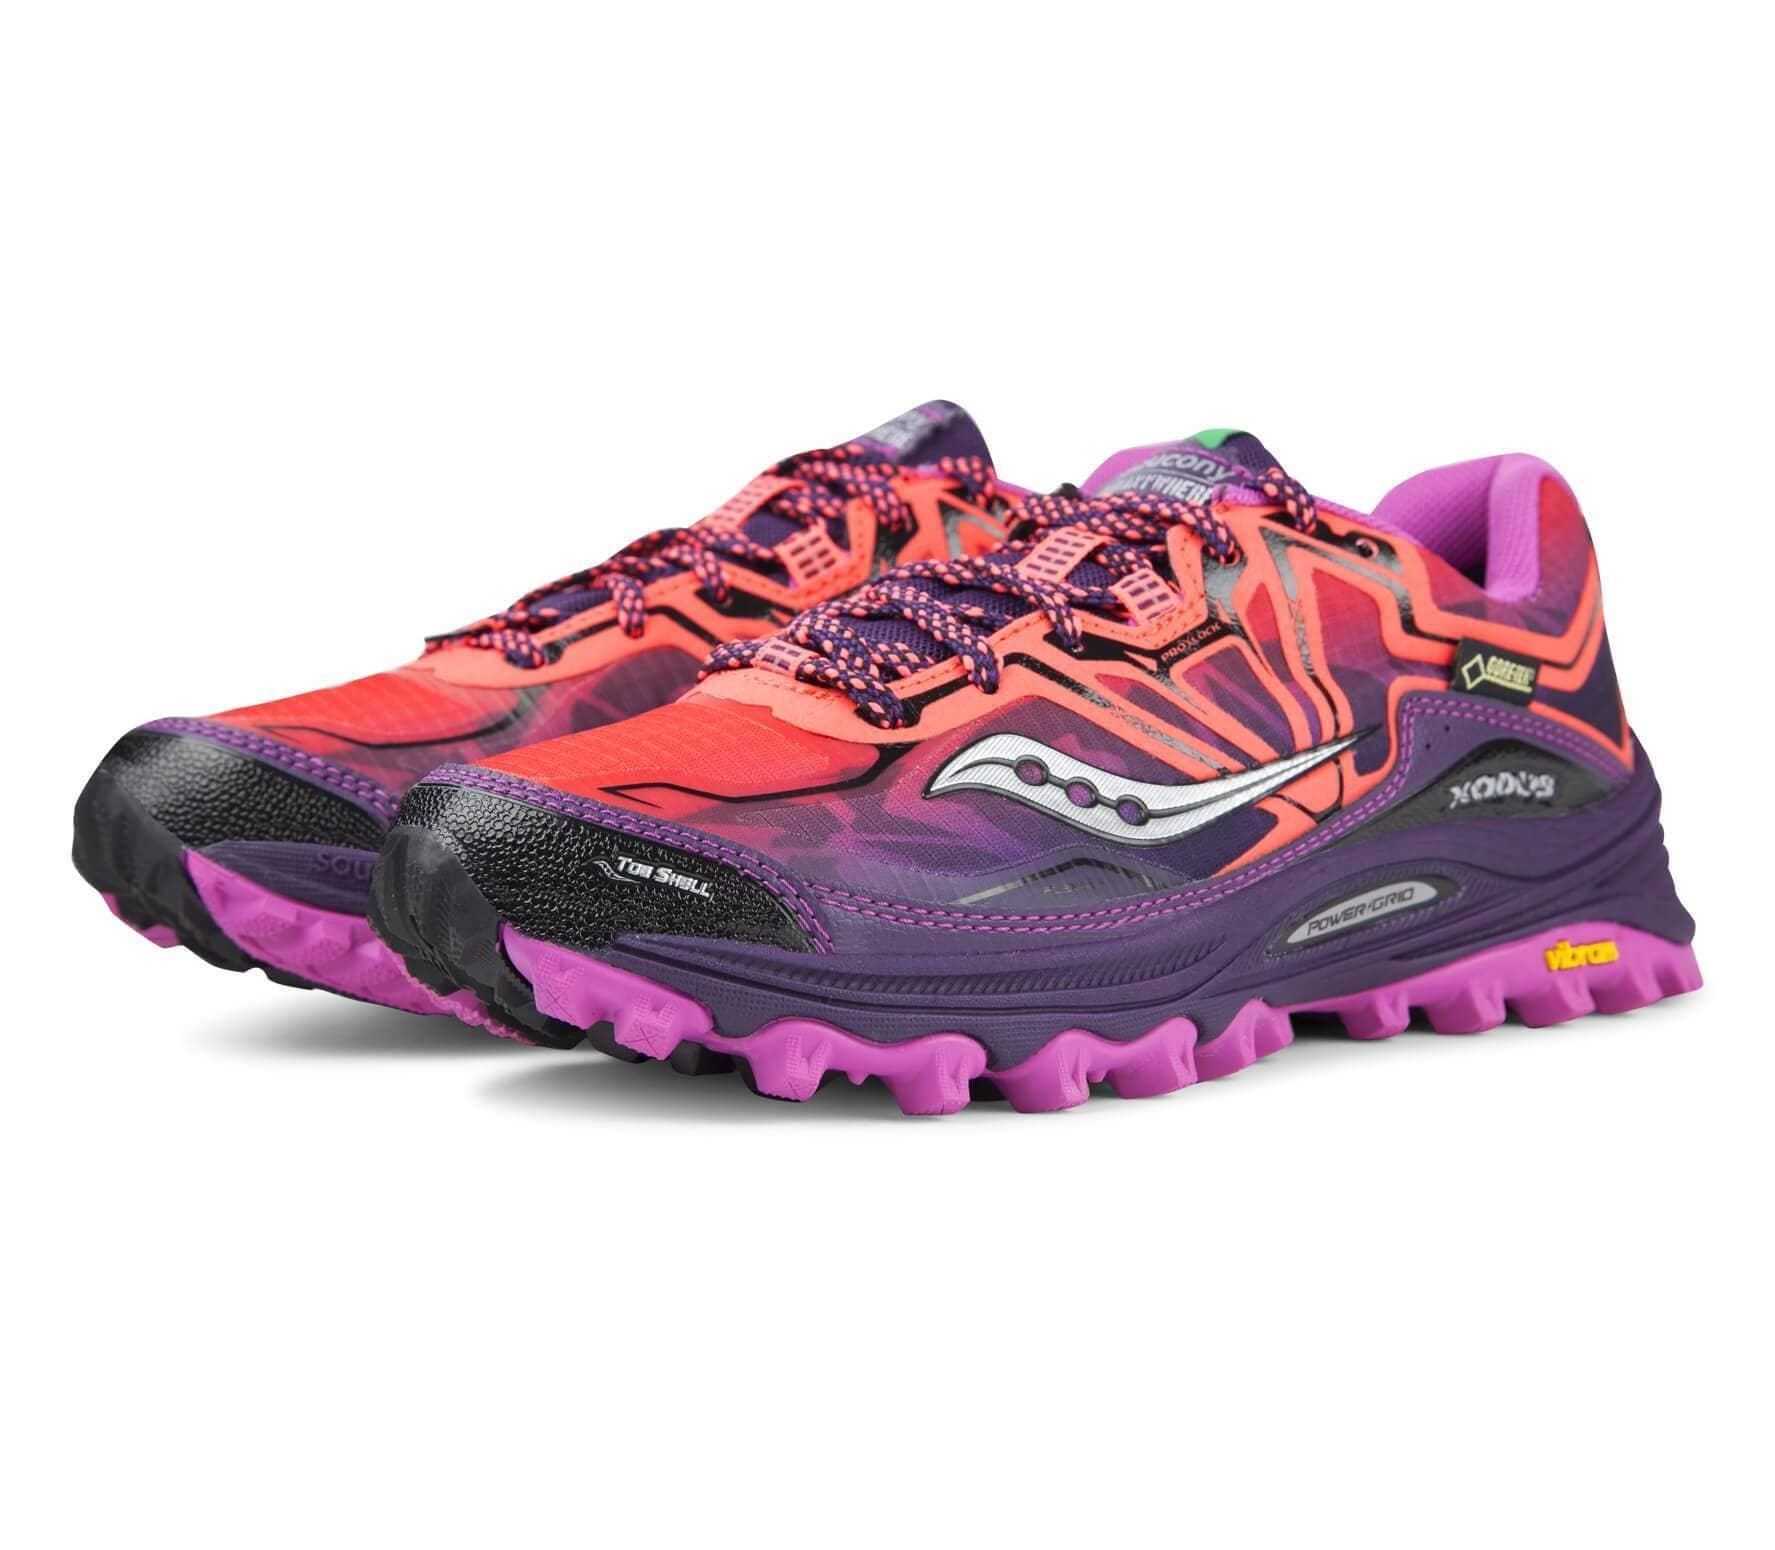 bc63108e3bbc Saucony - Xodus 6.0 GTX women s running shoes (pink violet) - buy it ...